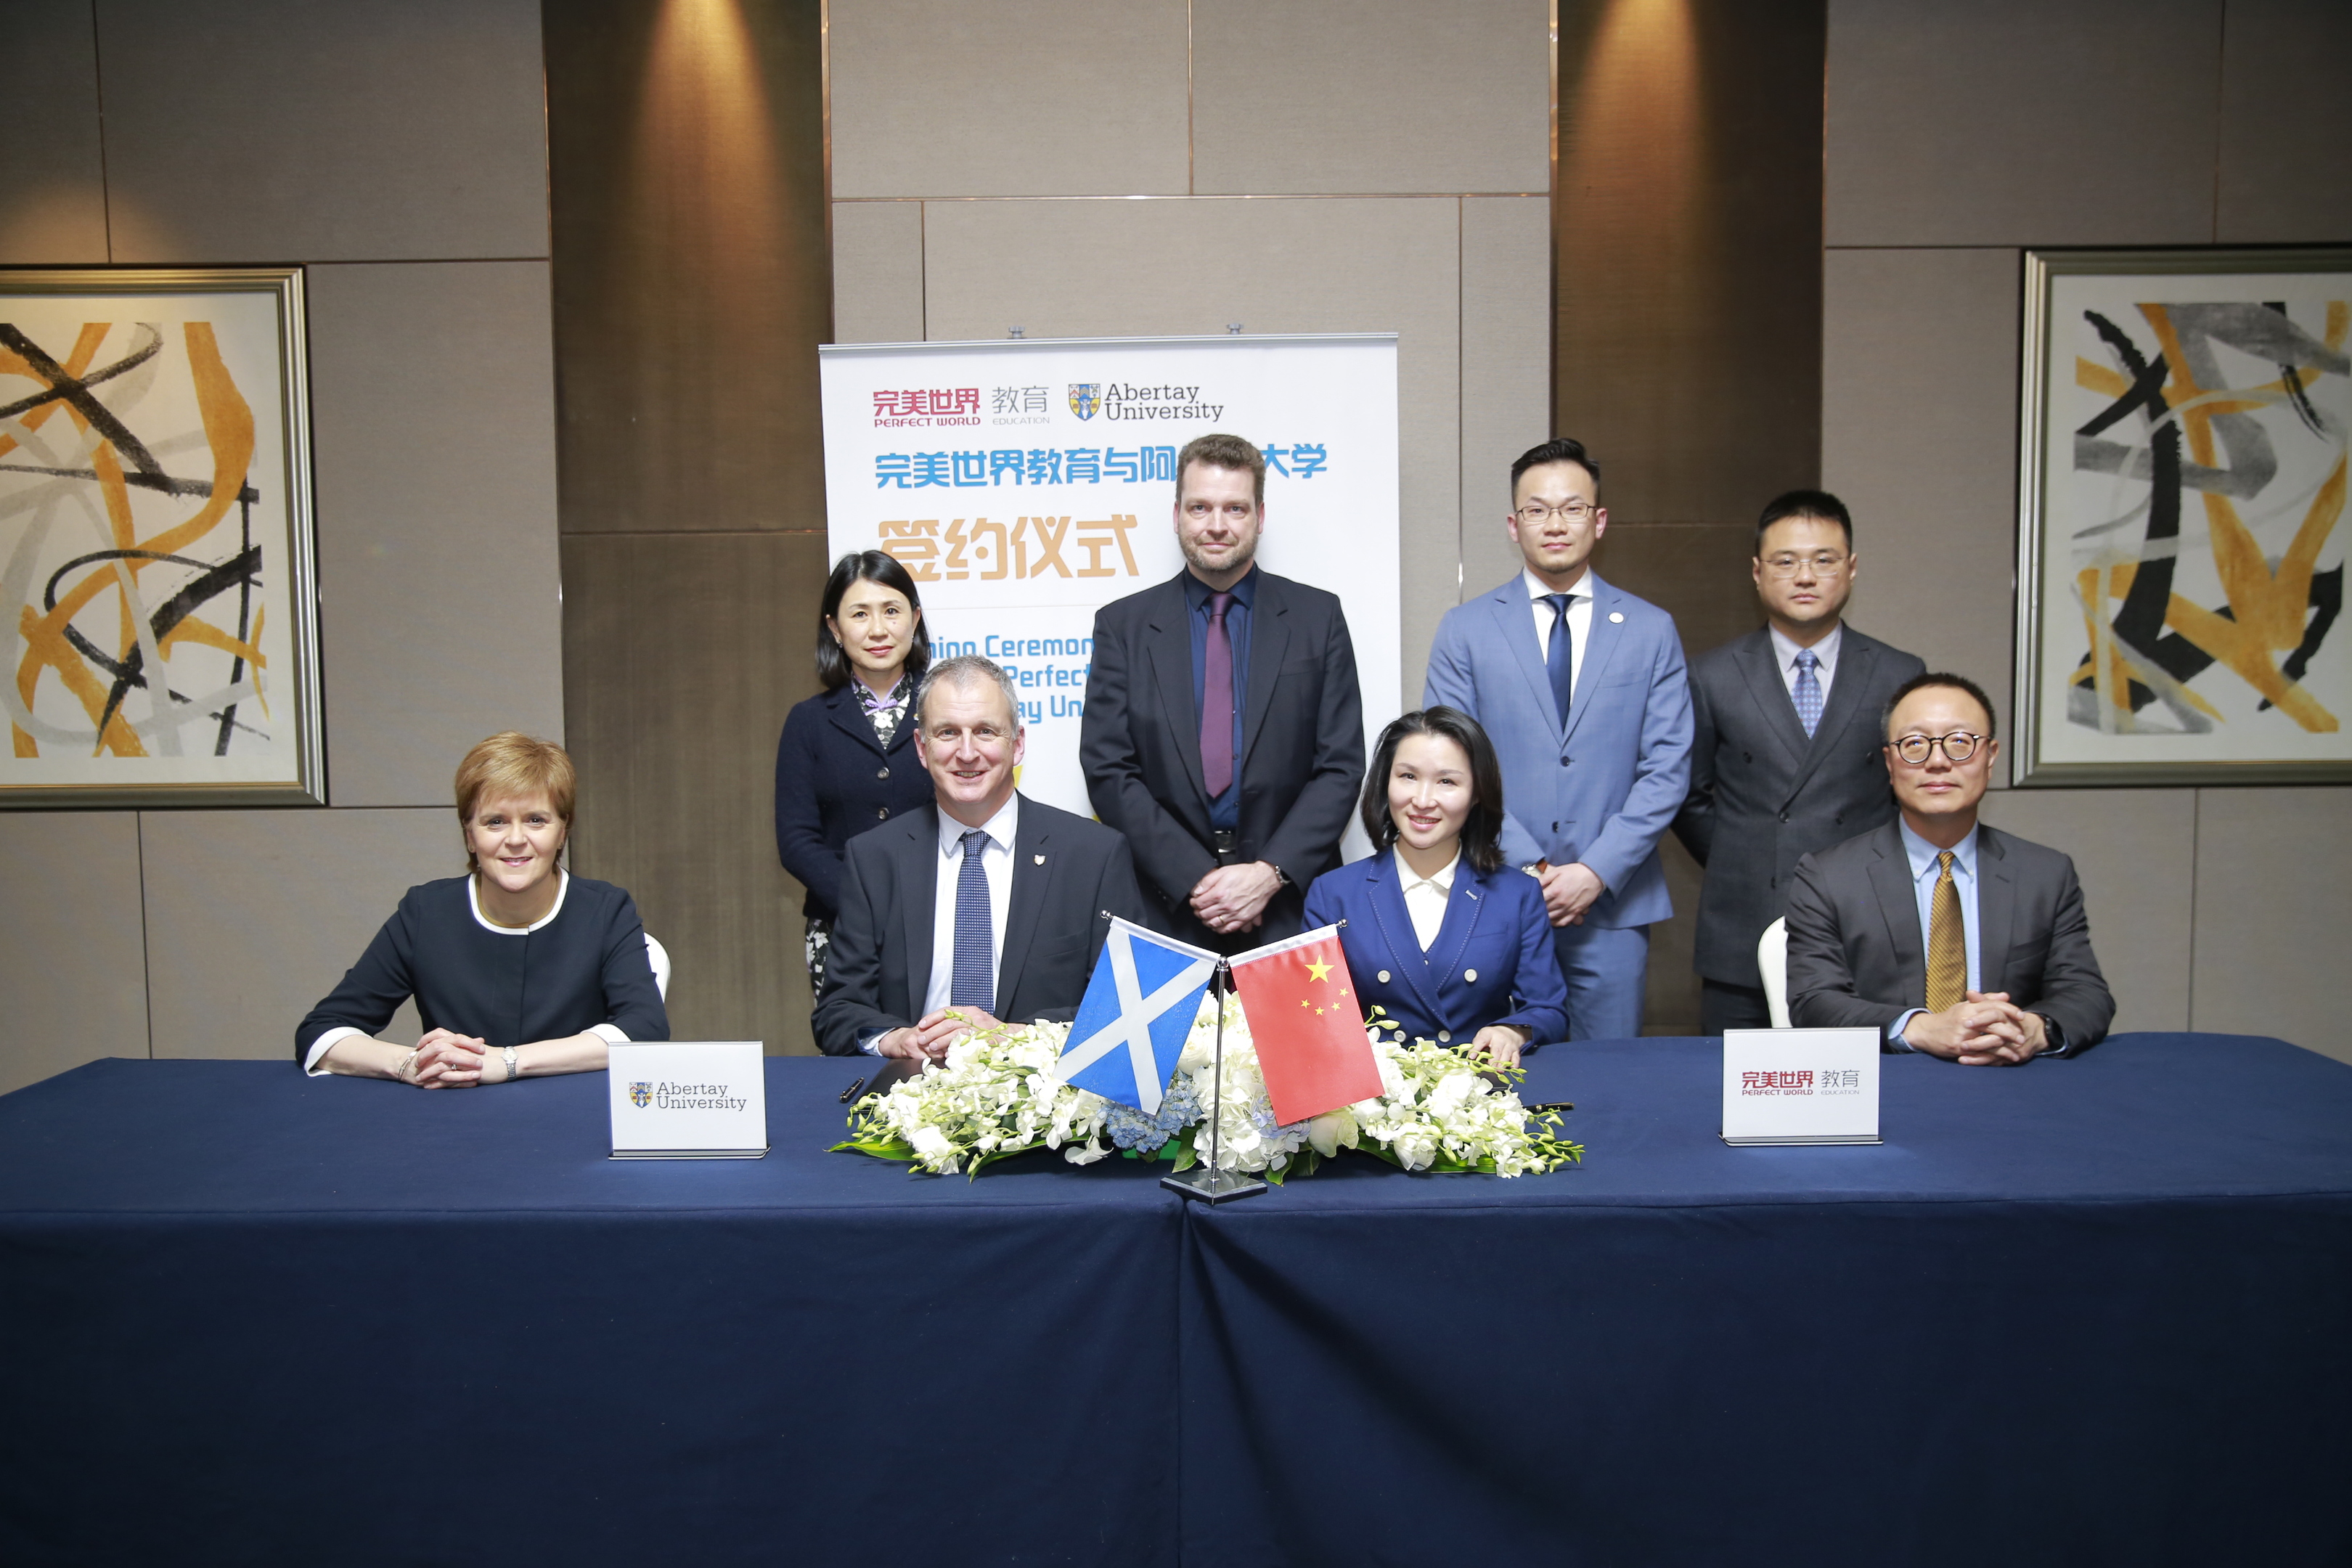 First Minister Nicola Sturgeon, Elaine Russell, Abertay International Manager, Abertay Principal Professor Nigel Seaton, Ken Fee Abertay games lecturer, Dr Ruby Wang (Chair, Perfect World Education), Kai Hu Vice-General Manager, Perfect World Education, Fei Wu, Program Manager, Perfect World Education, Dr Robert H. Xiao, CEO Perfect World